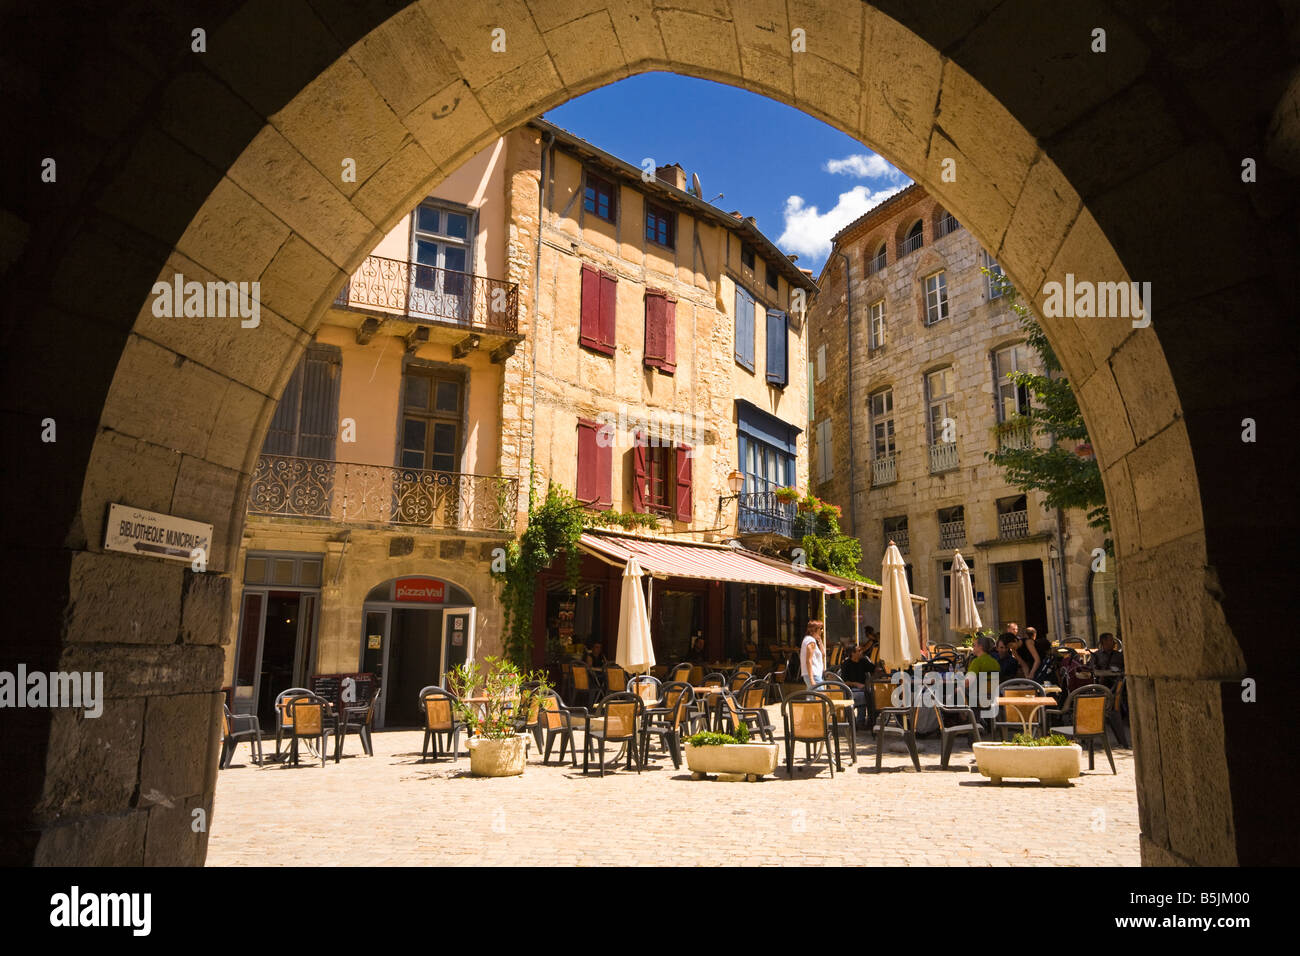 Pavement cafe restaurants in the medieval town square St Antonin Noble Val in Tarn et Garonne, France, Europe - Stock Image